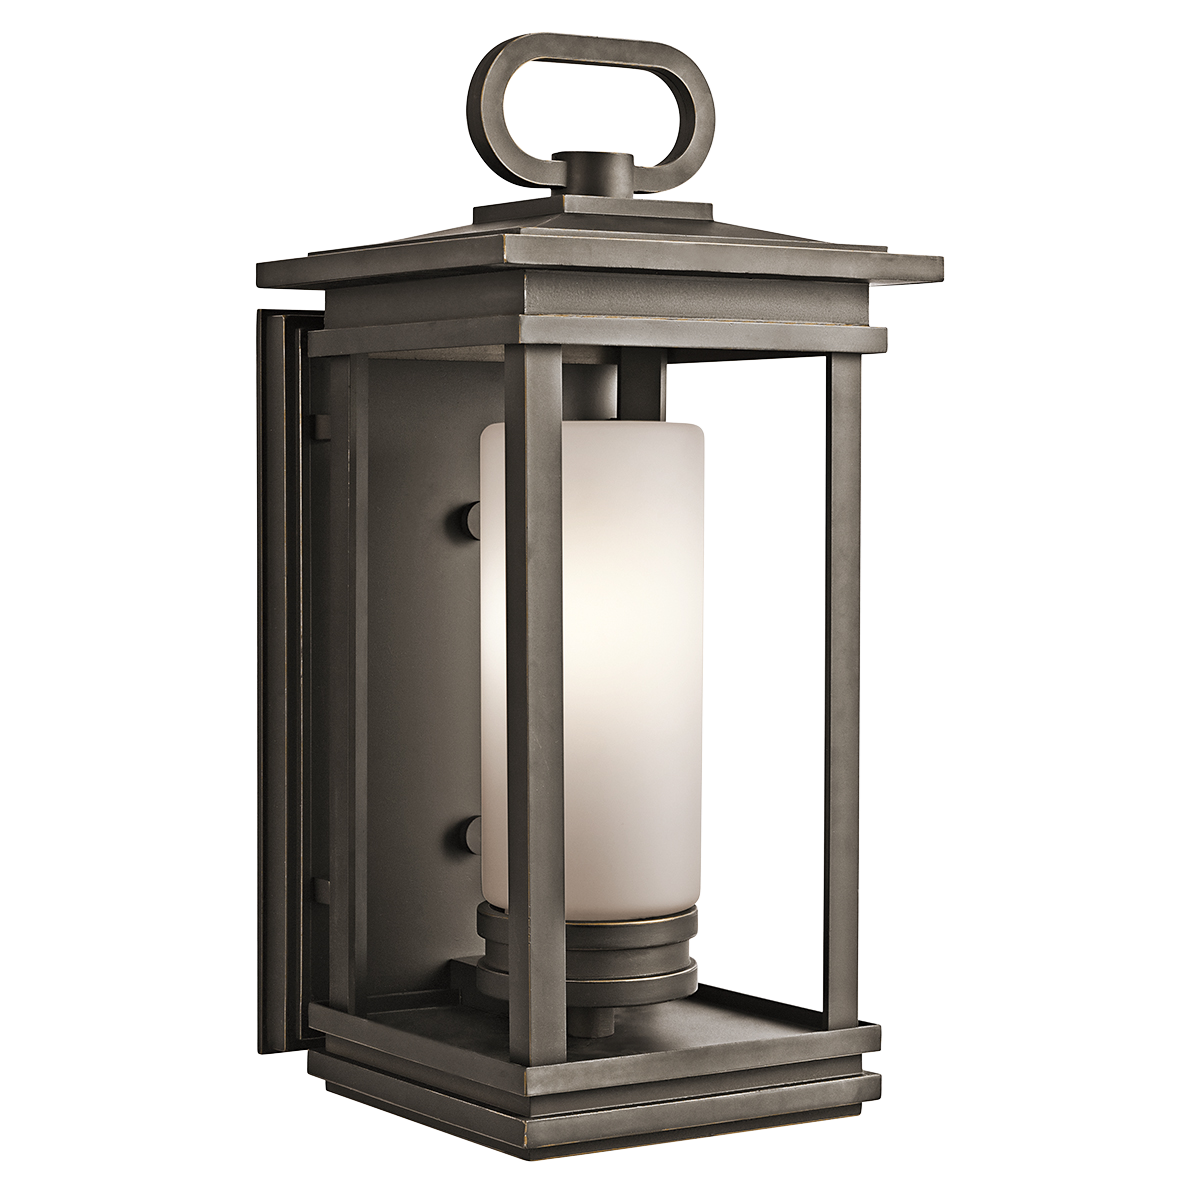 Kichler South Hope 1 Light Outdoor Wall Sconce   in  Rubbed Bronze   Simple  and sophisticated  the Kichler South Hope 1 Light Outdoor Wall Sconce   in South Hope Large Fluorescent Outdoor Lantern in RZ KICHLER  . Kichler Lighting Outdoor Sconce. Home Design Ideas